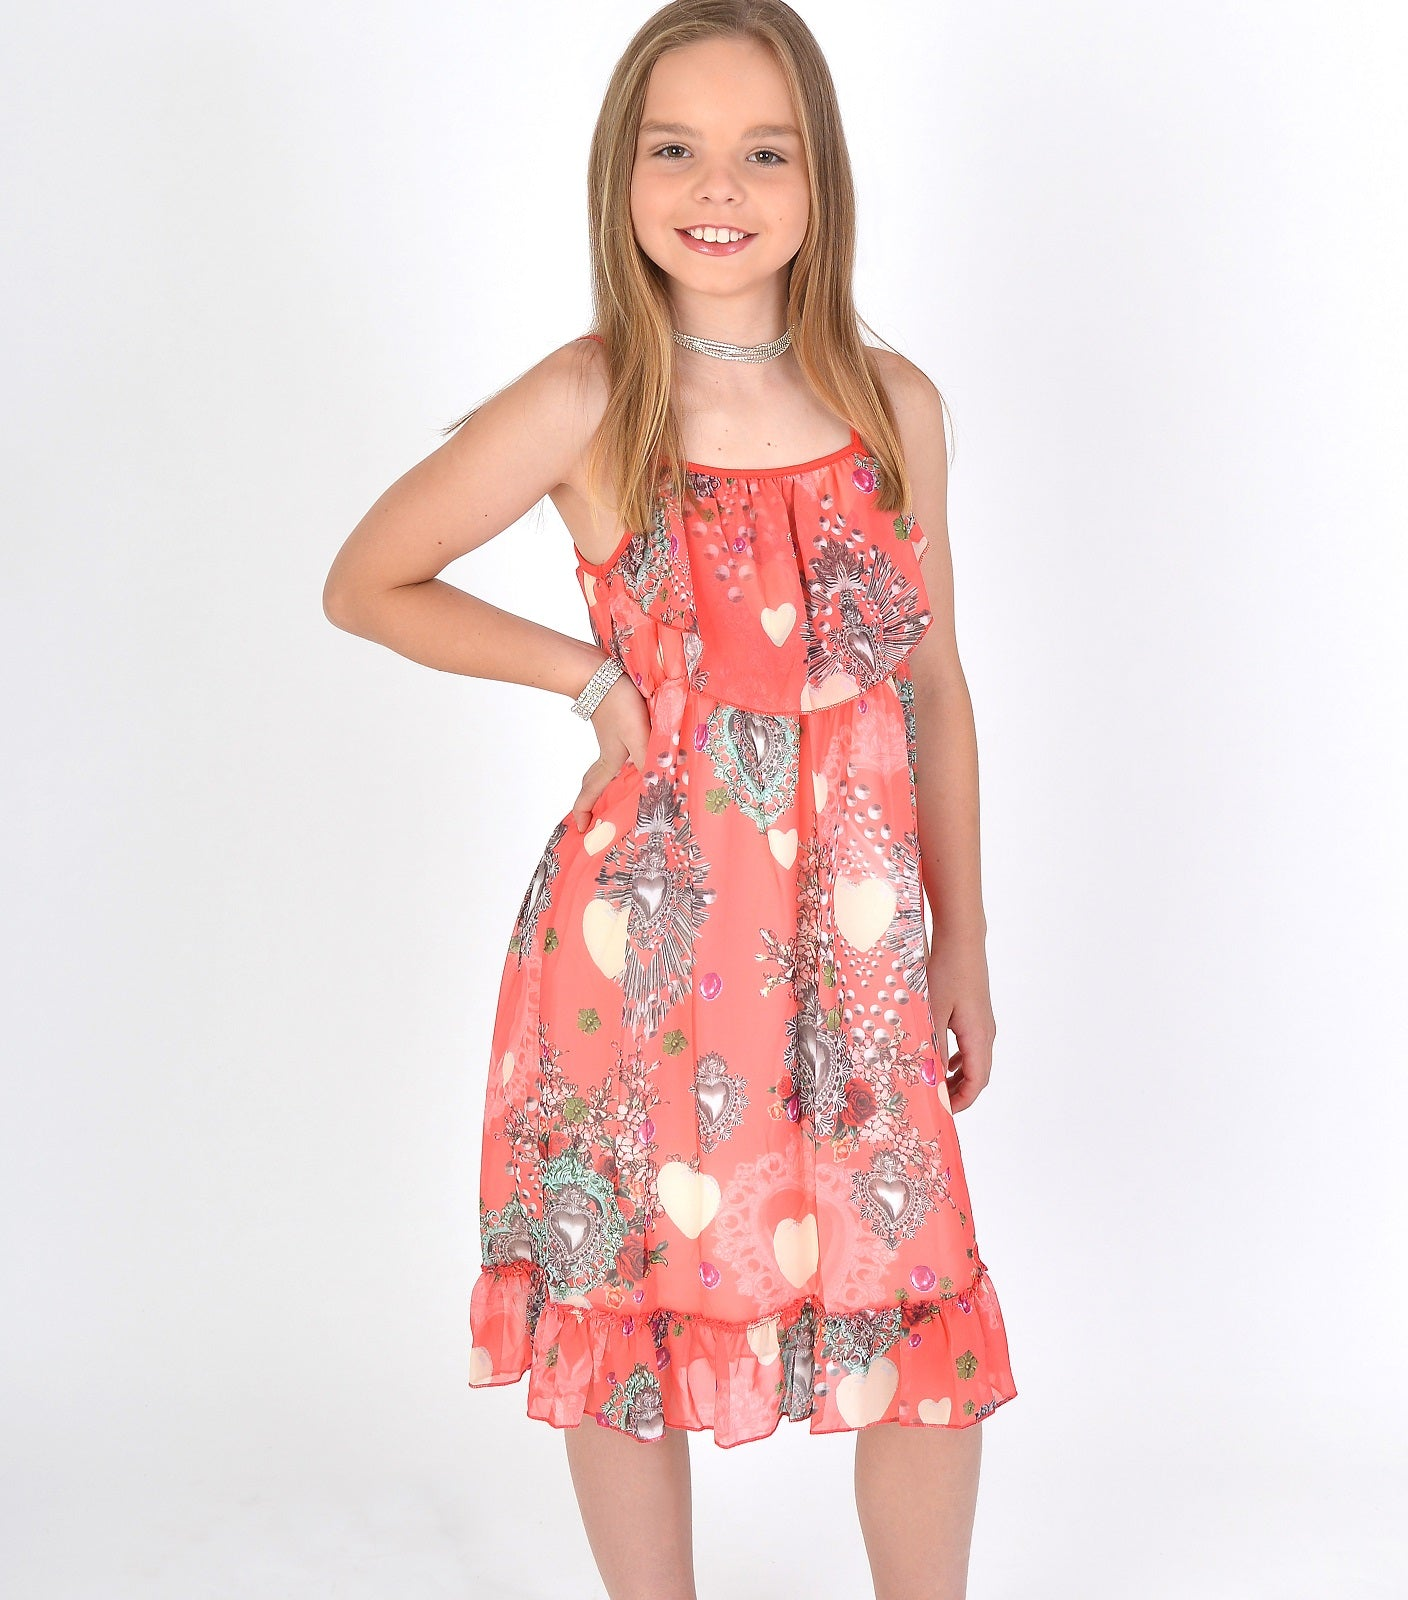 Coral Pink dress for girls